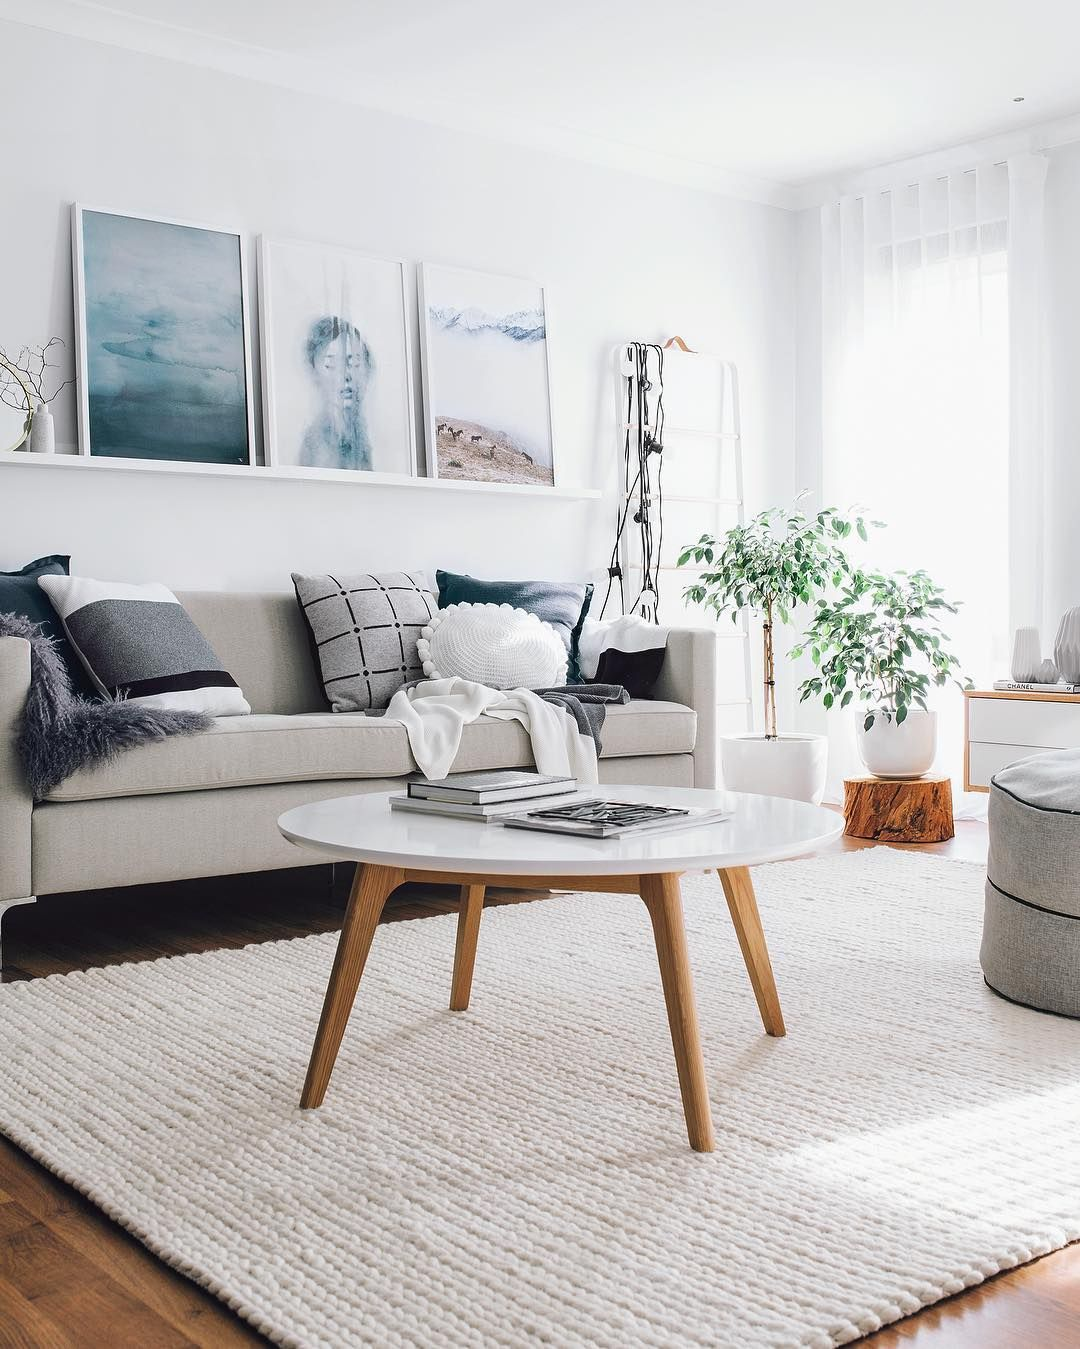 12 Scandinavian Rugs For The Perfect Nordic Look Living Room Scandinavian Scandi Living Room Living Room Decor